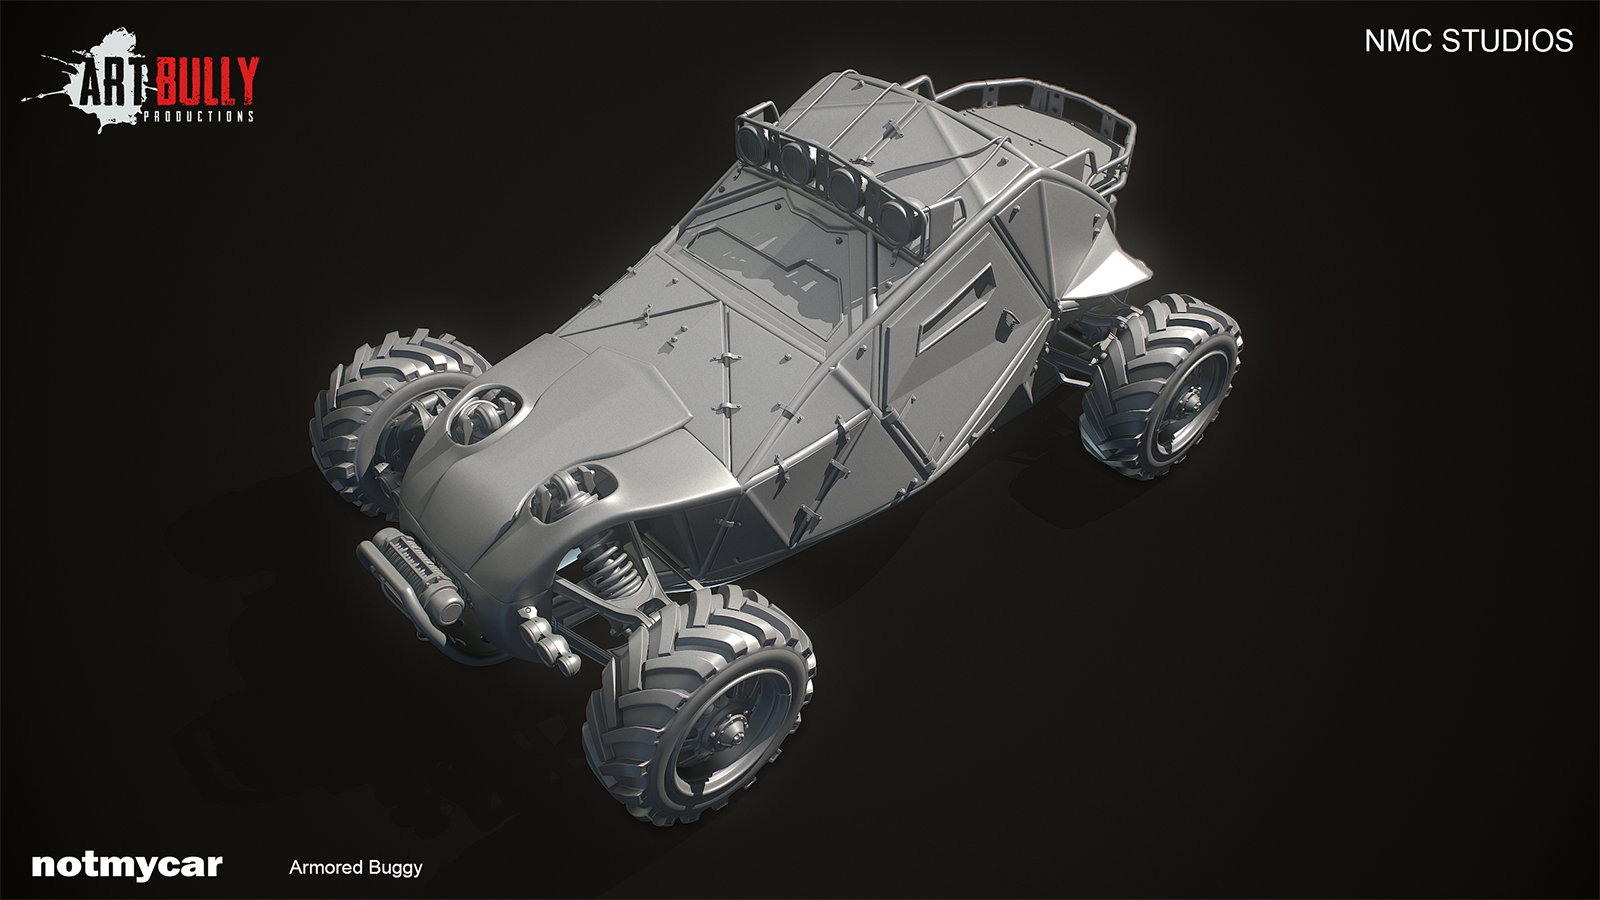 Artbully.co_NMC_Armored_Buggy_Top_High.png